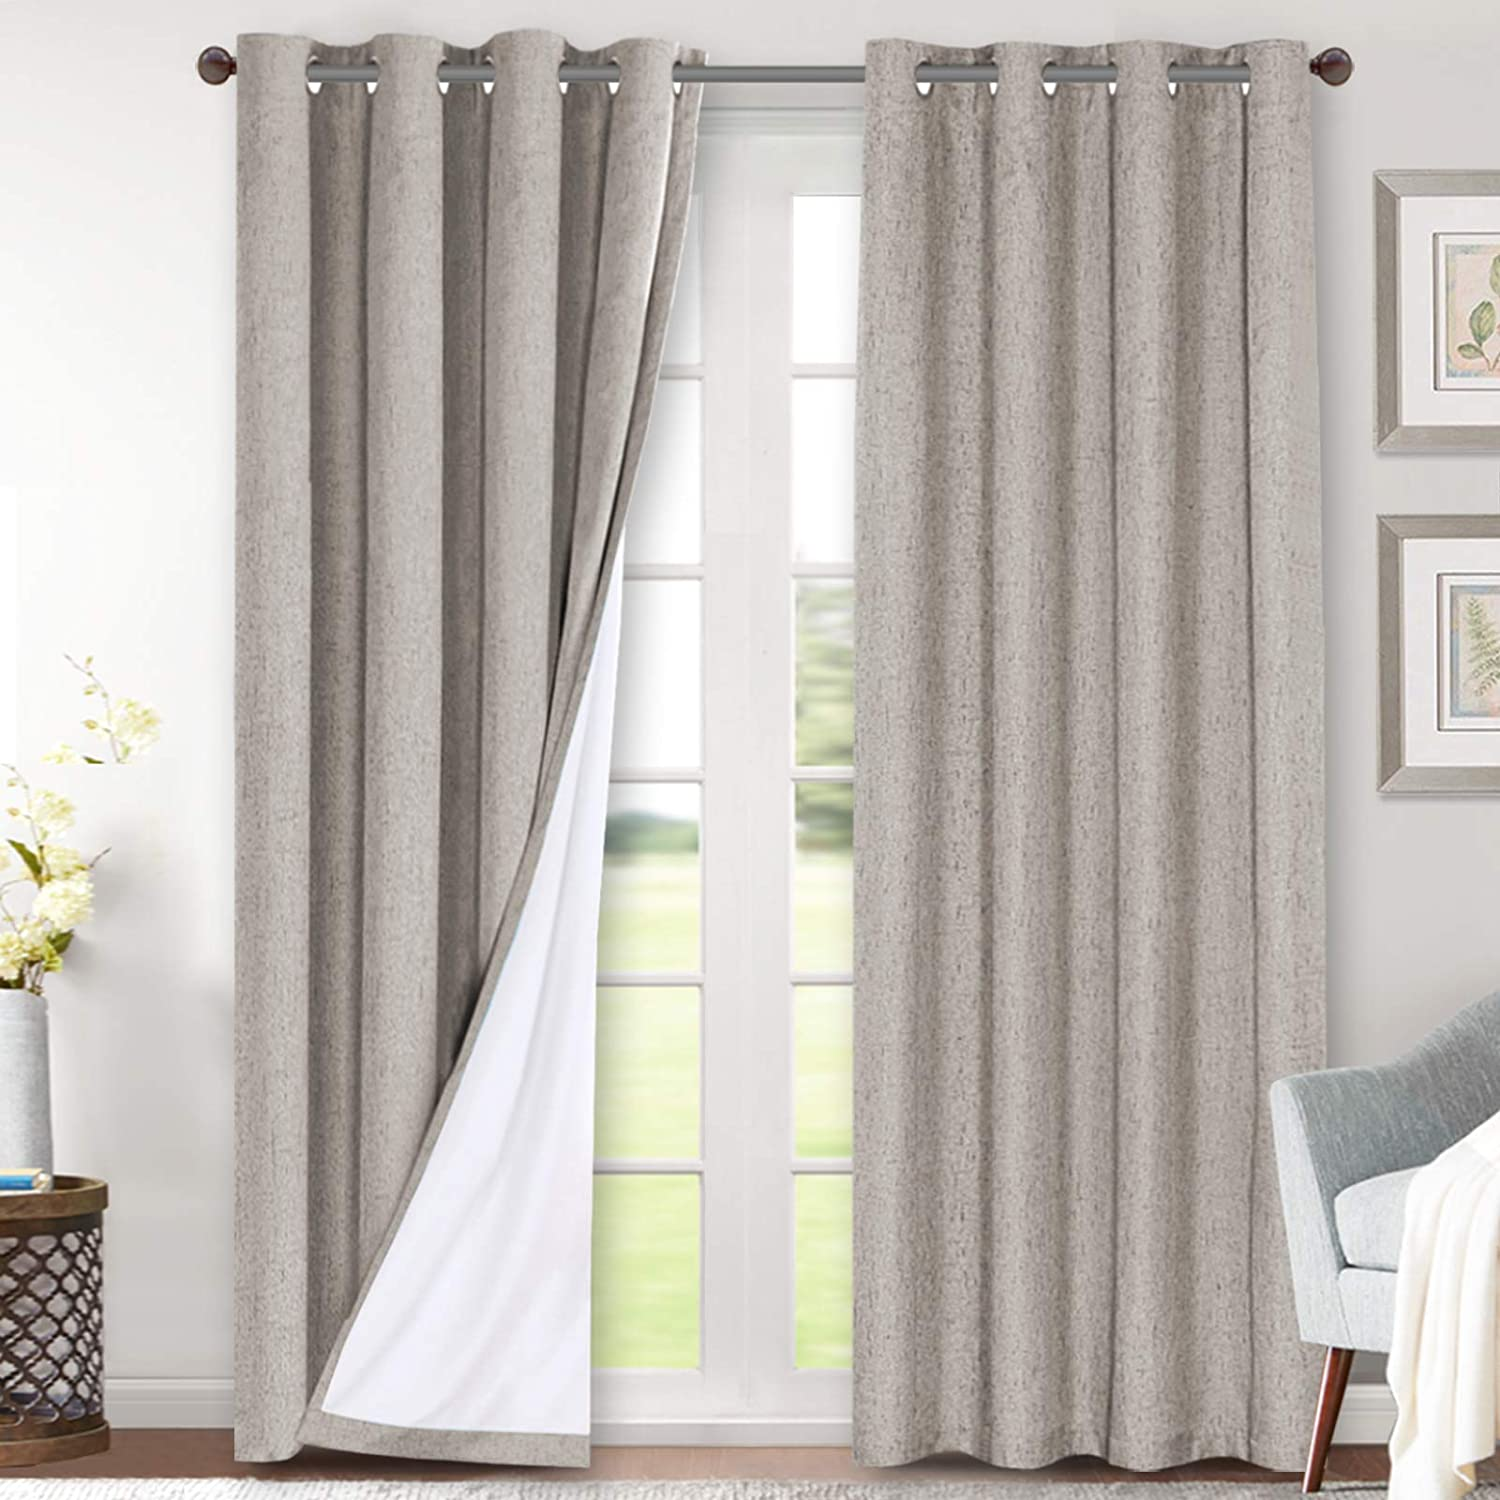 Linen Blackout Curtains 96 Inches Long 100% Total Blackout Heavy-Duty Draperies for Bedroom Living Room Thermal Insulated Textured Functional Window Treatment Anti Rust Grommet (Taupe, 2 Panels)